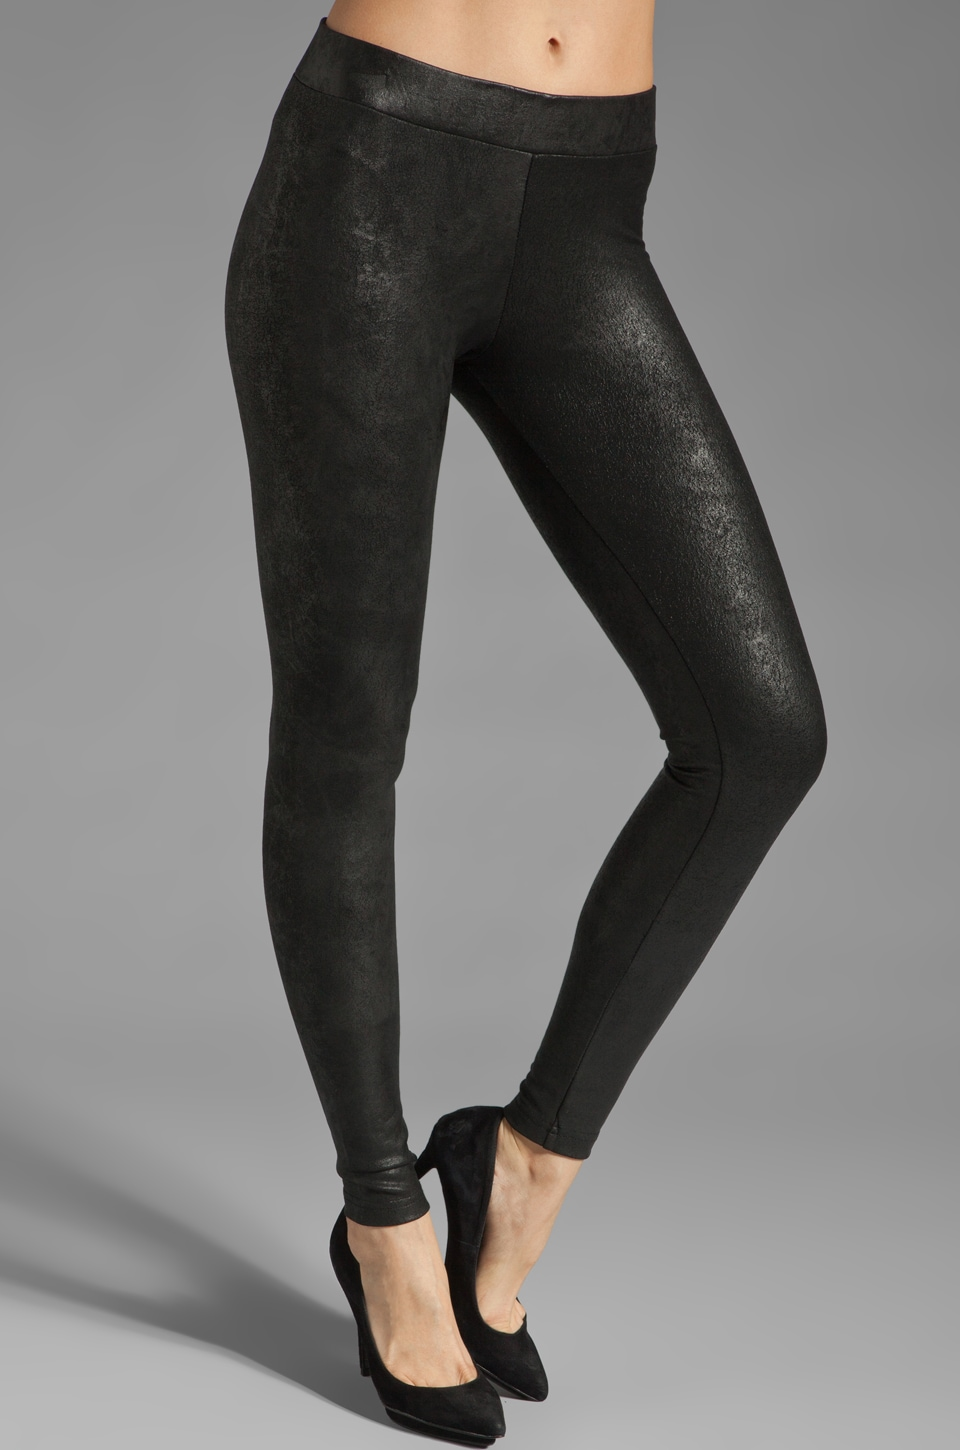 krisa Crushed Coated Legging in Black